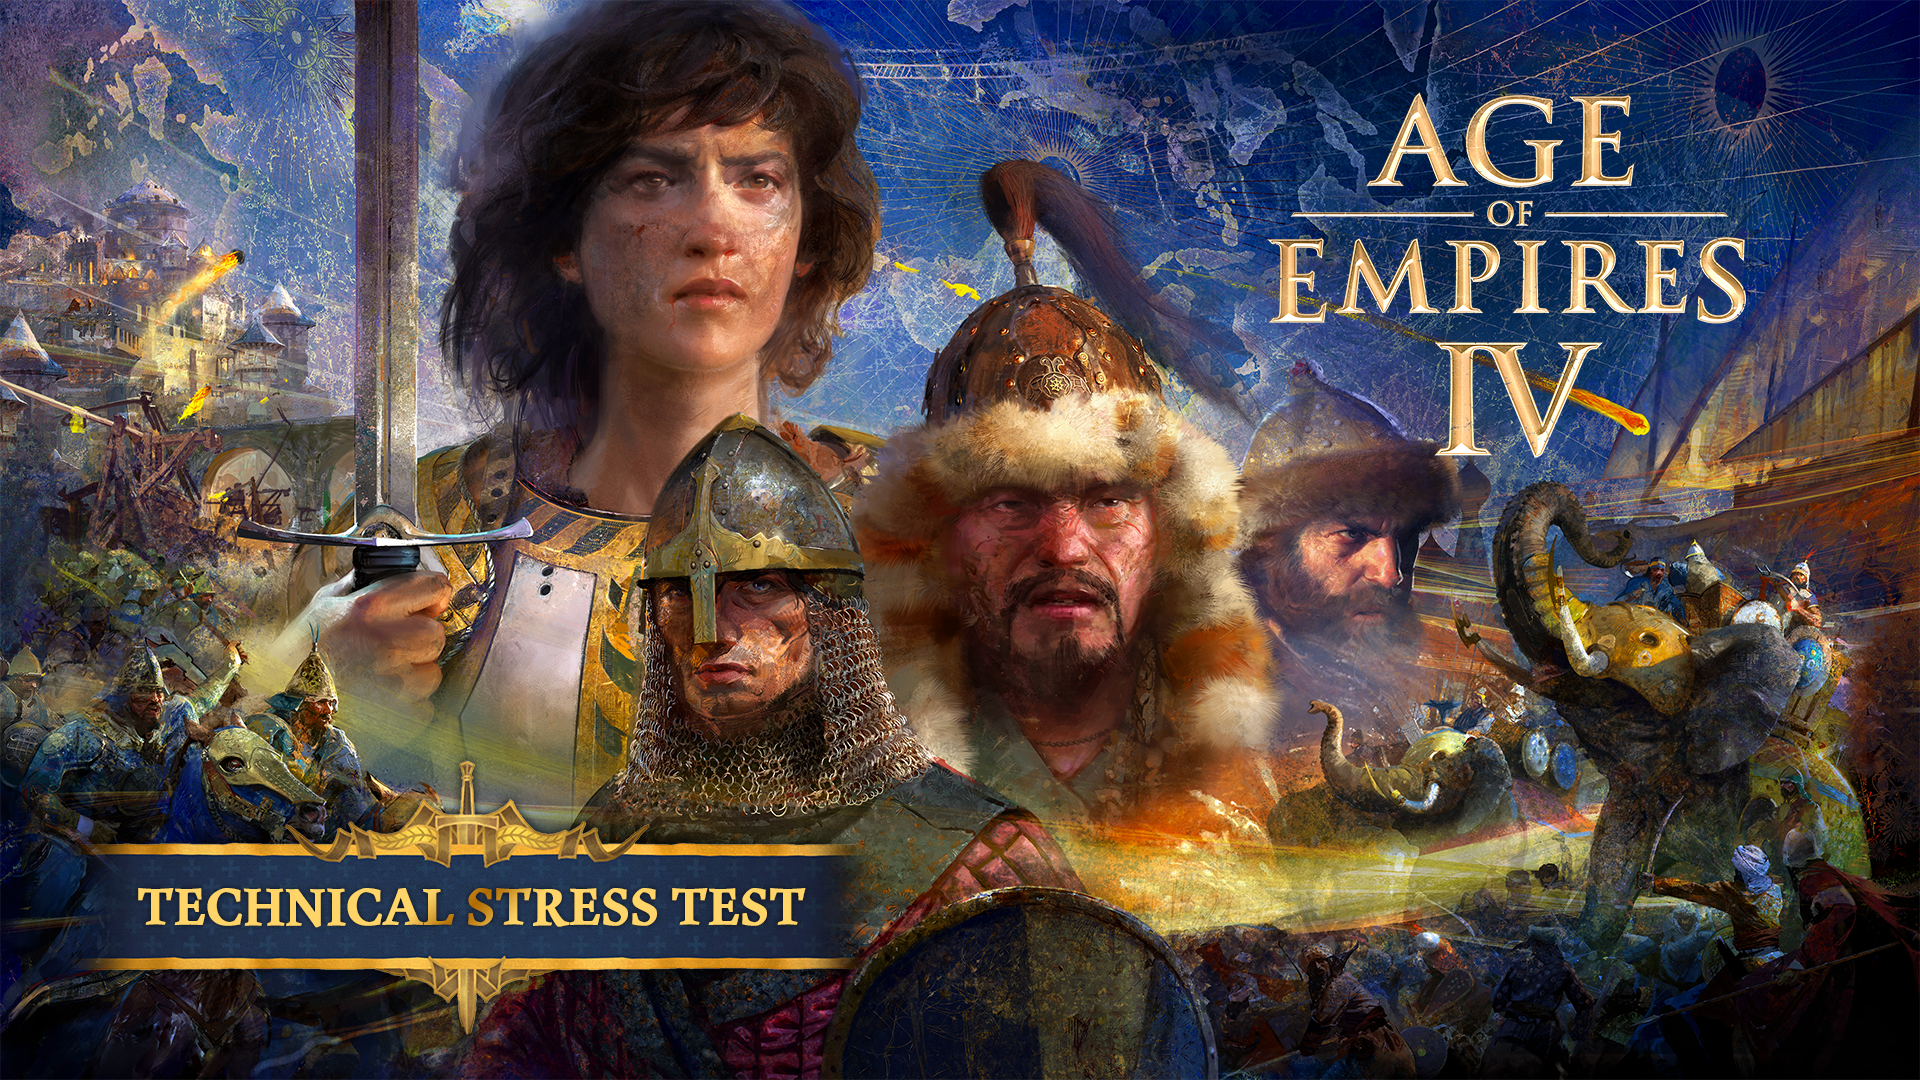 Join the Age of Empires IV Technical Stress Test